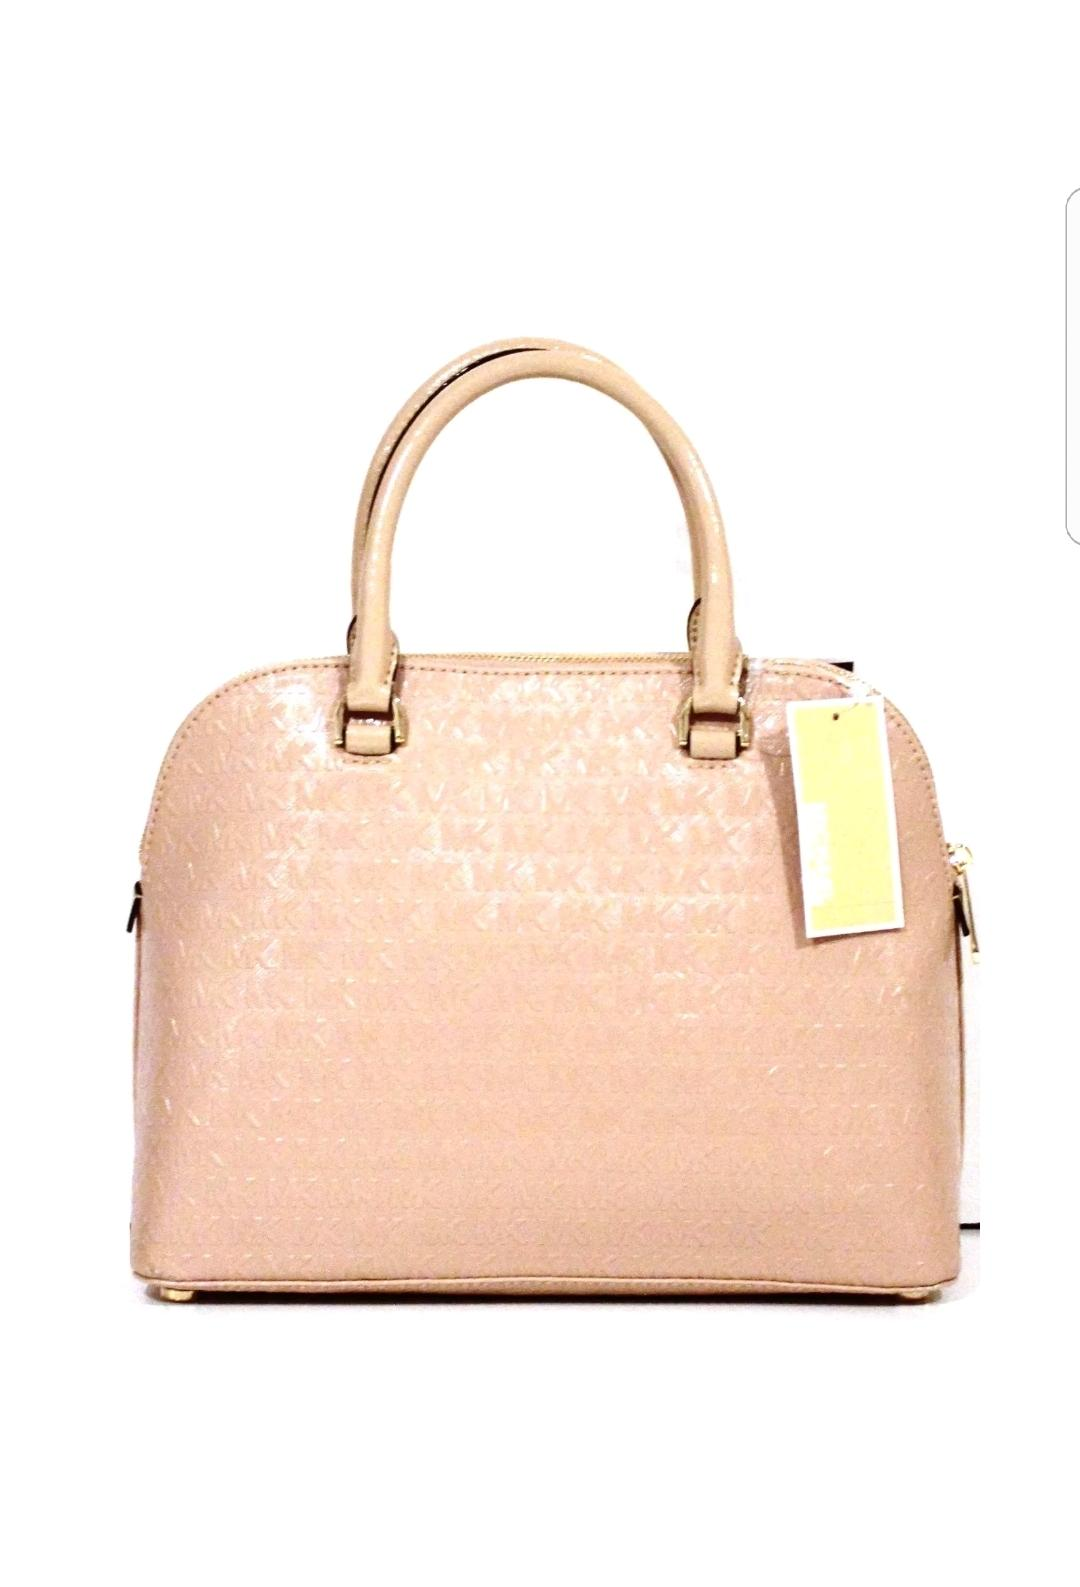 6307e6b977f5 promo code for michael kors satchel cindy kimberly 60840 e70ed